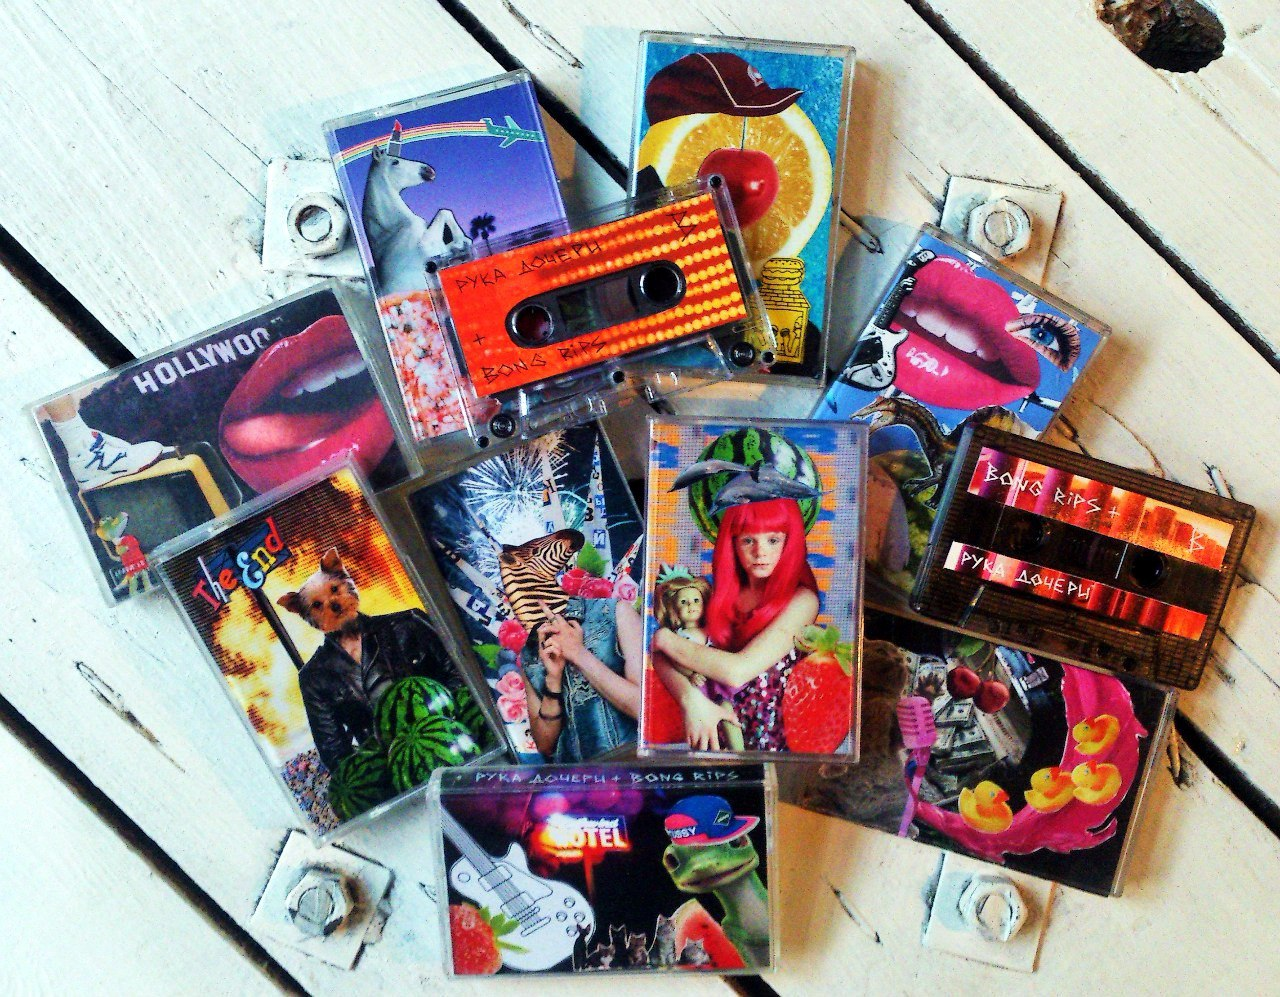 A mix of indie label cassettes. Image: Nastya Romakhova